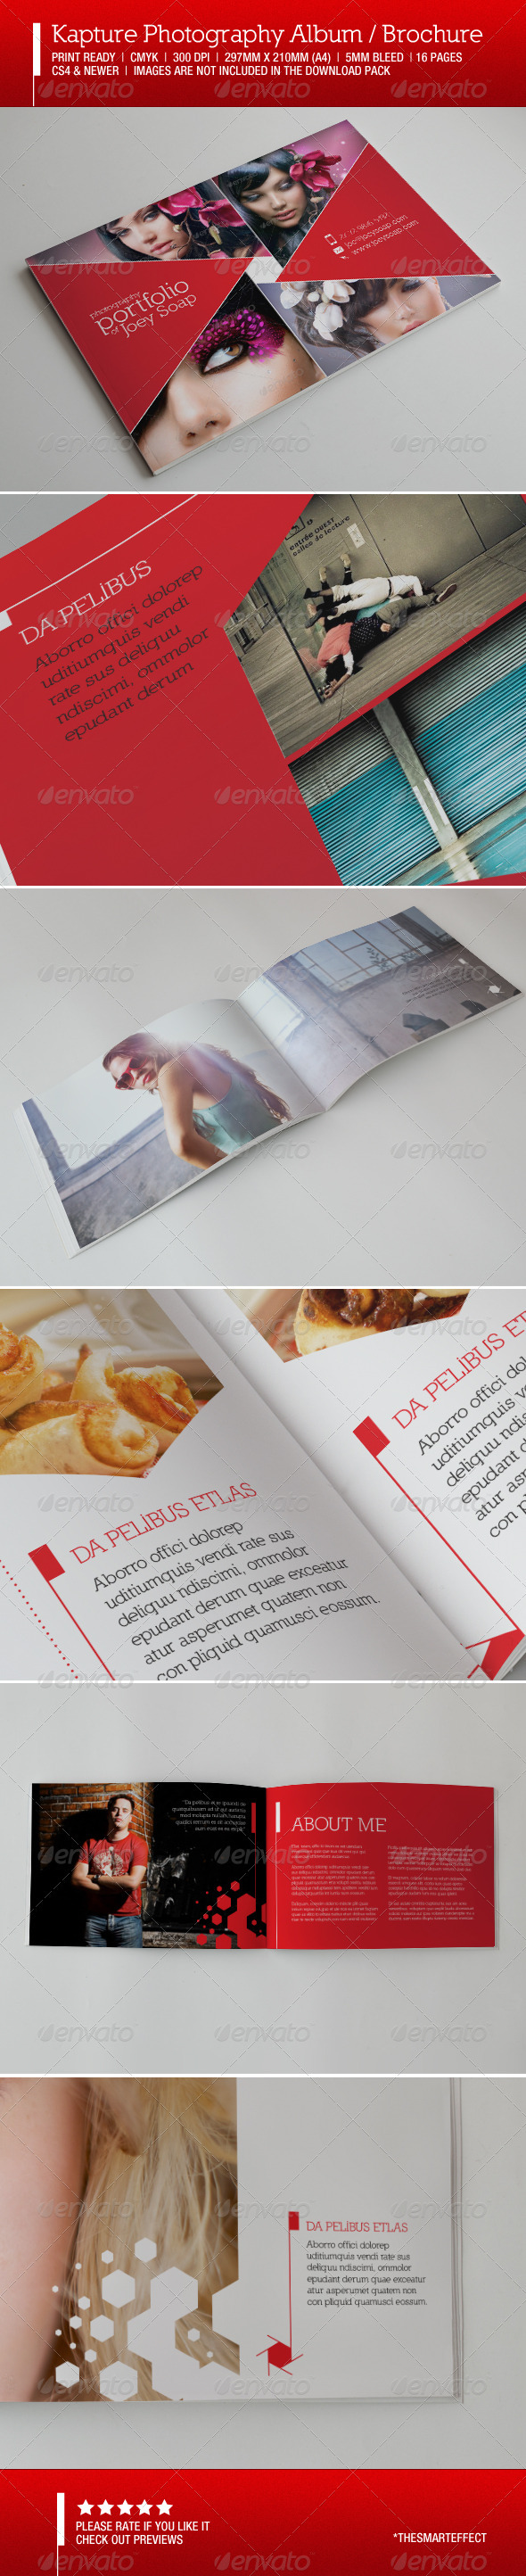 GraphicRiver Kapture Photography Album Brochure 3436820